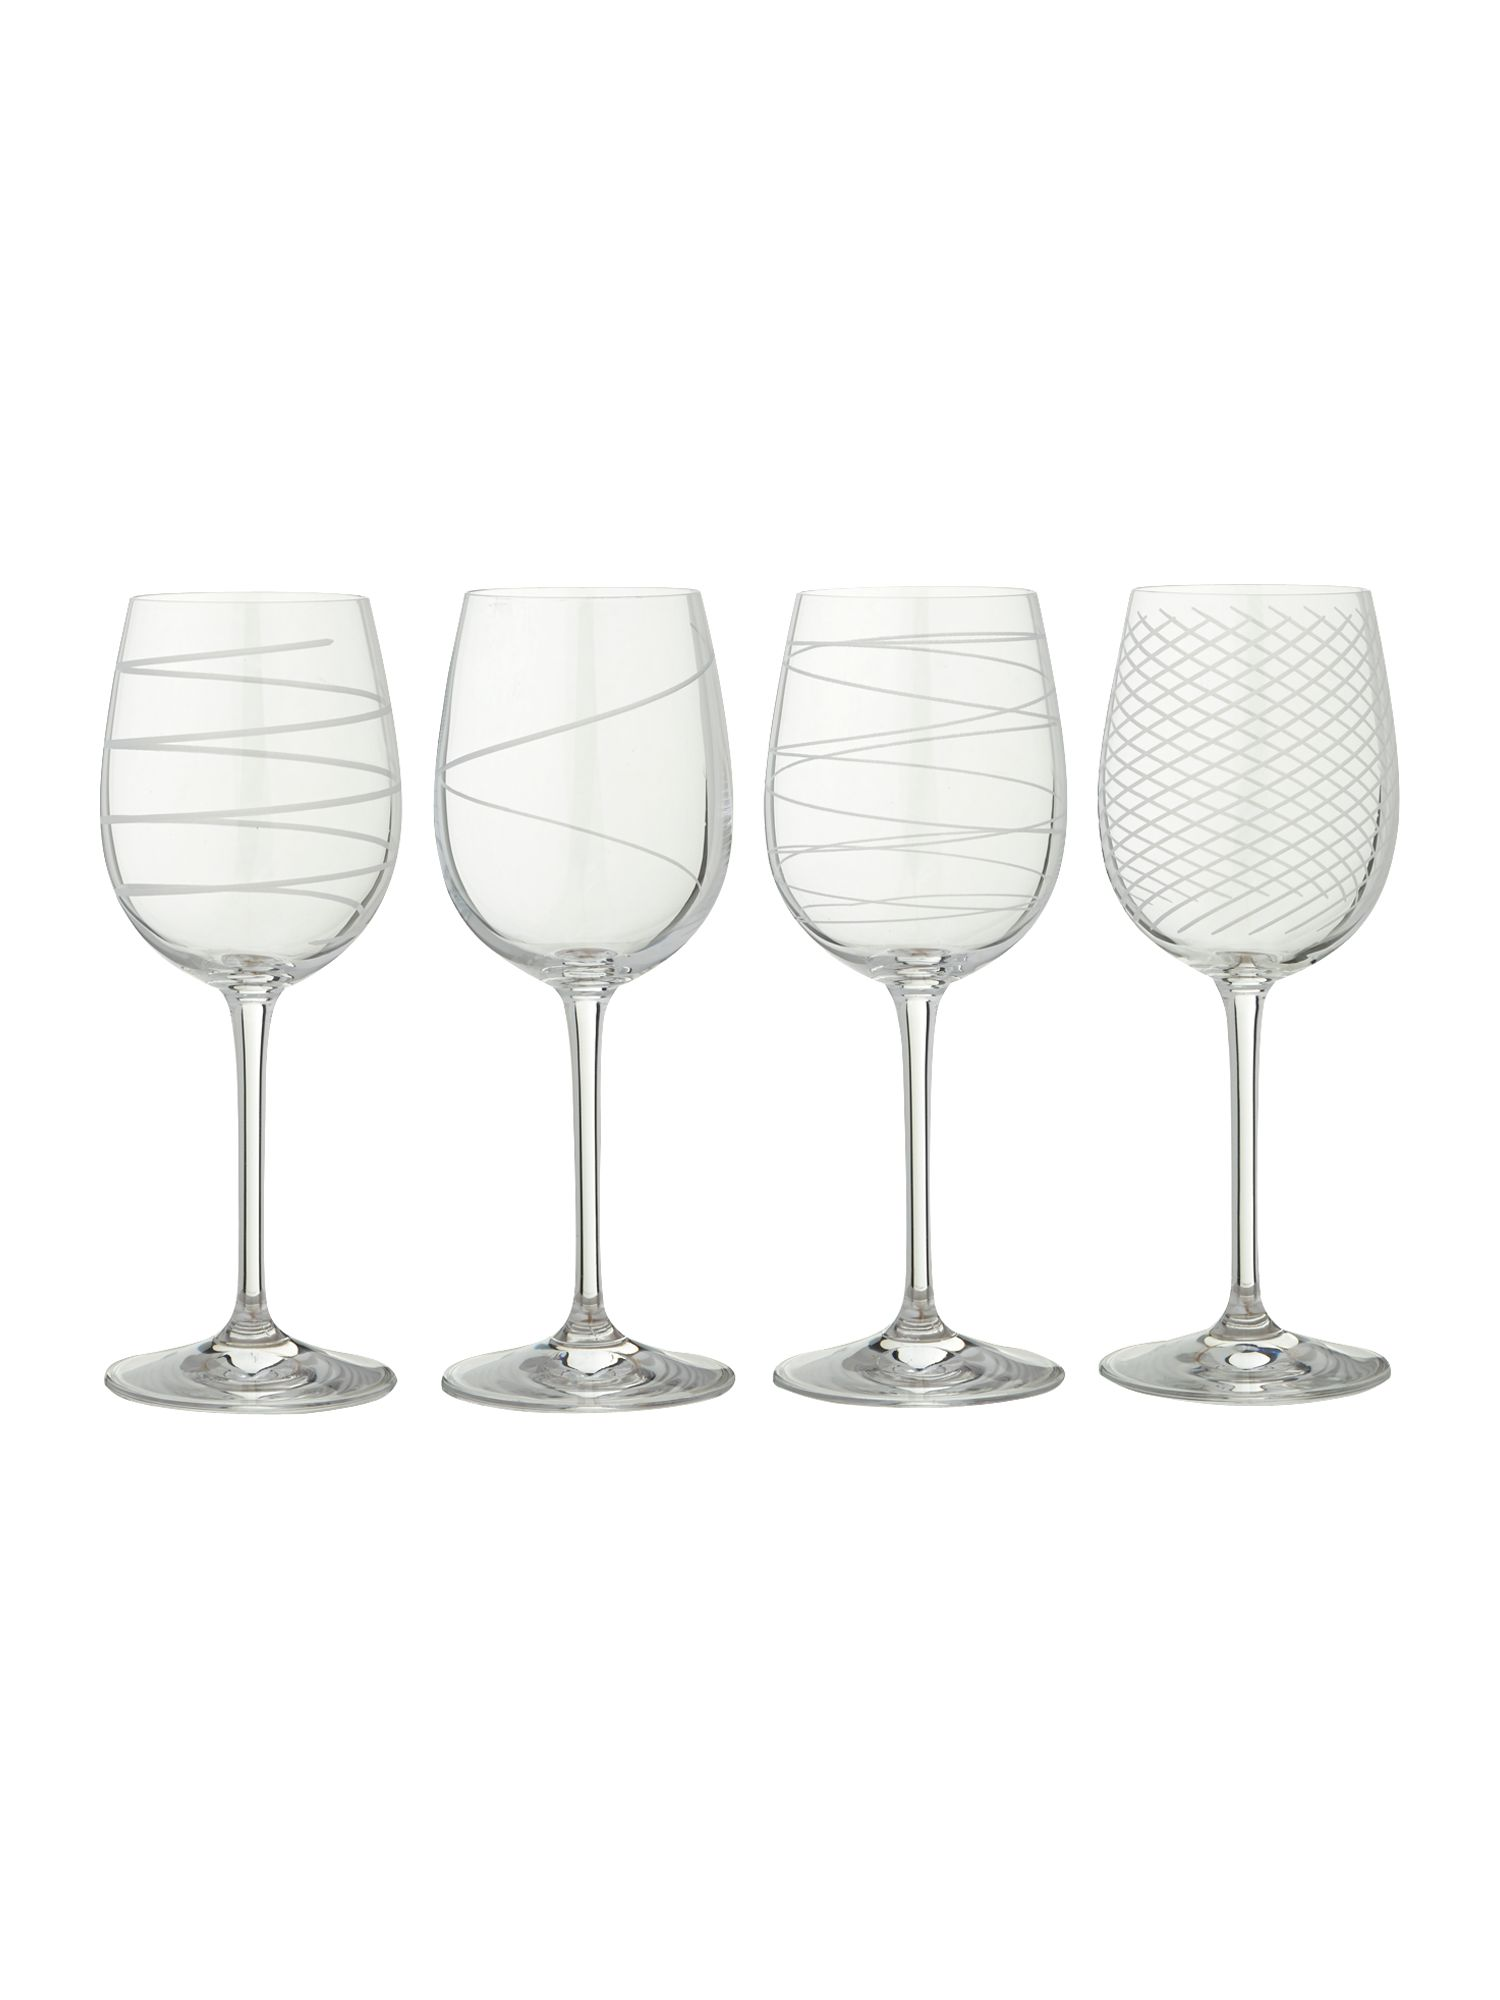 Etched wine glasses, set of 4